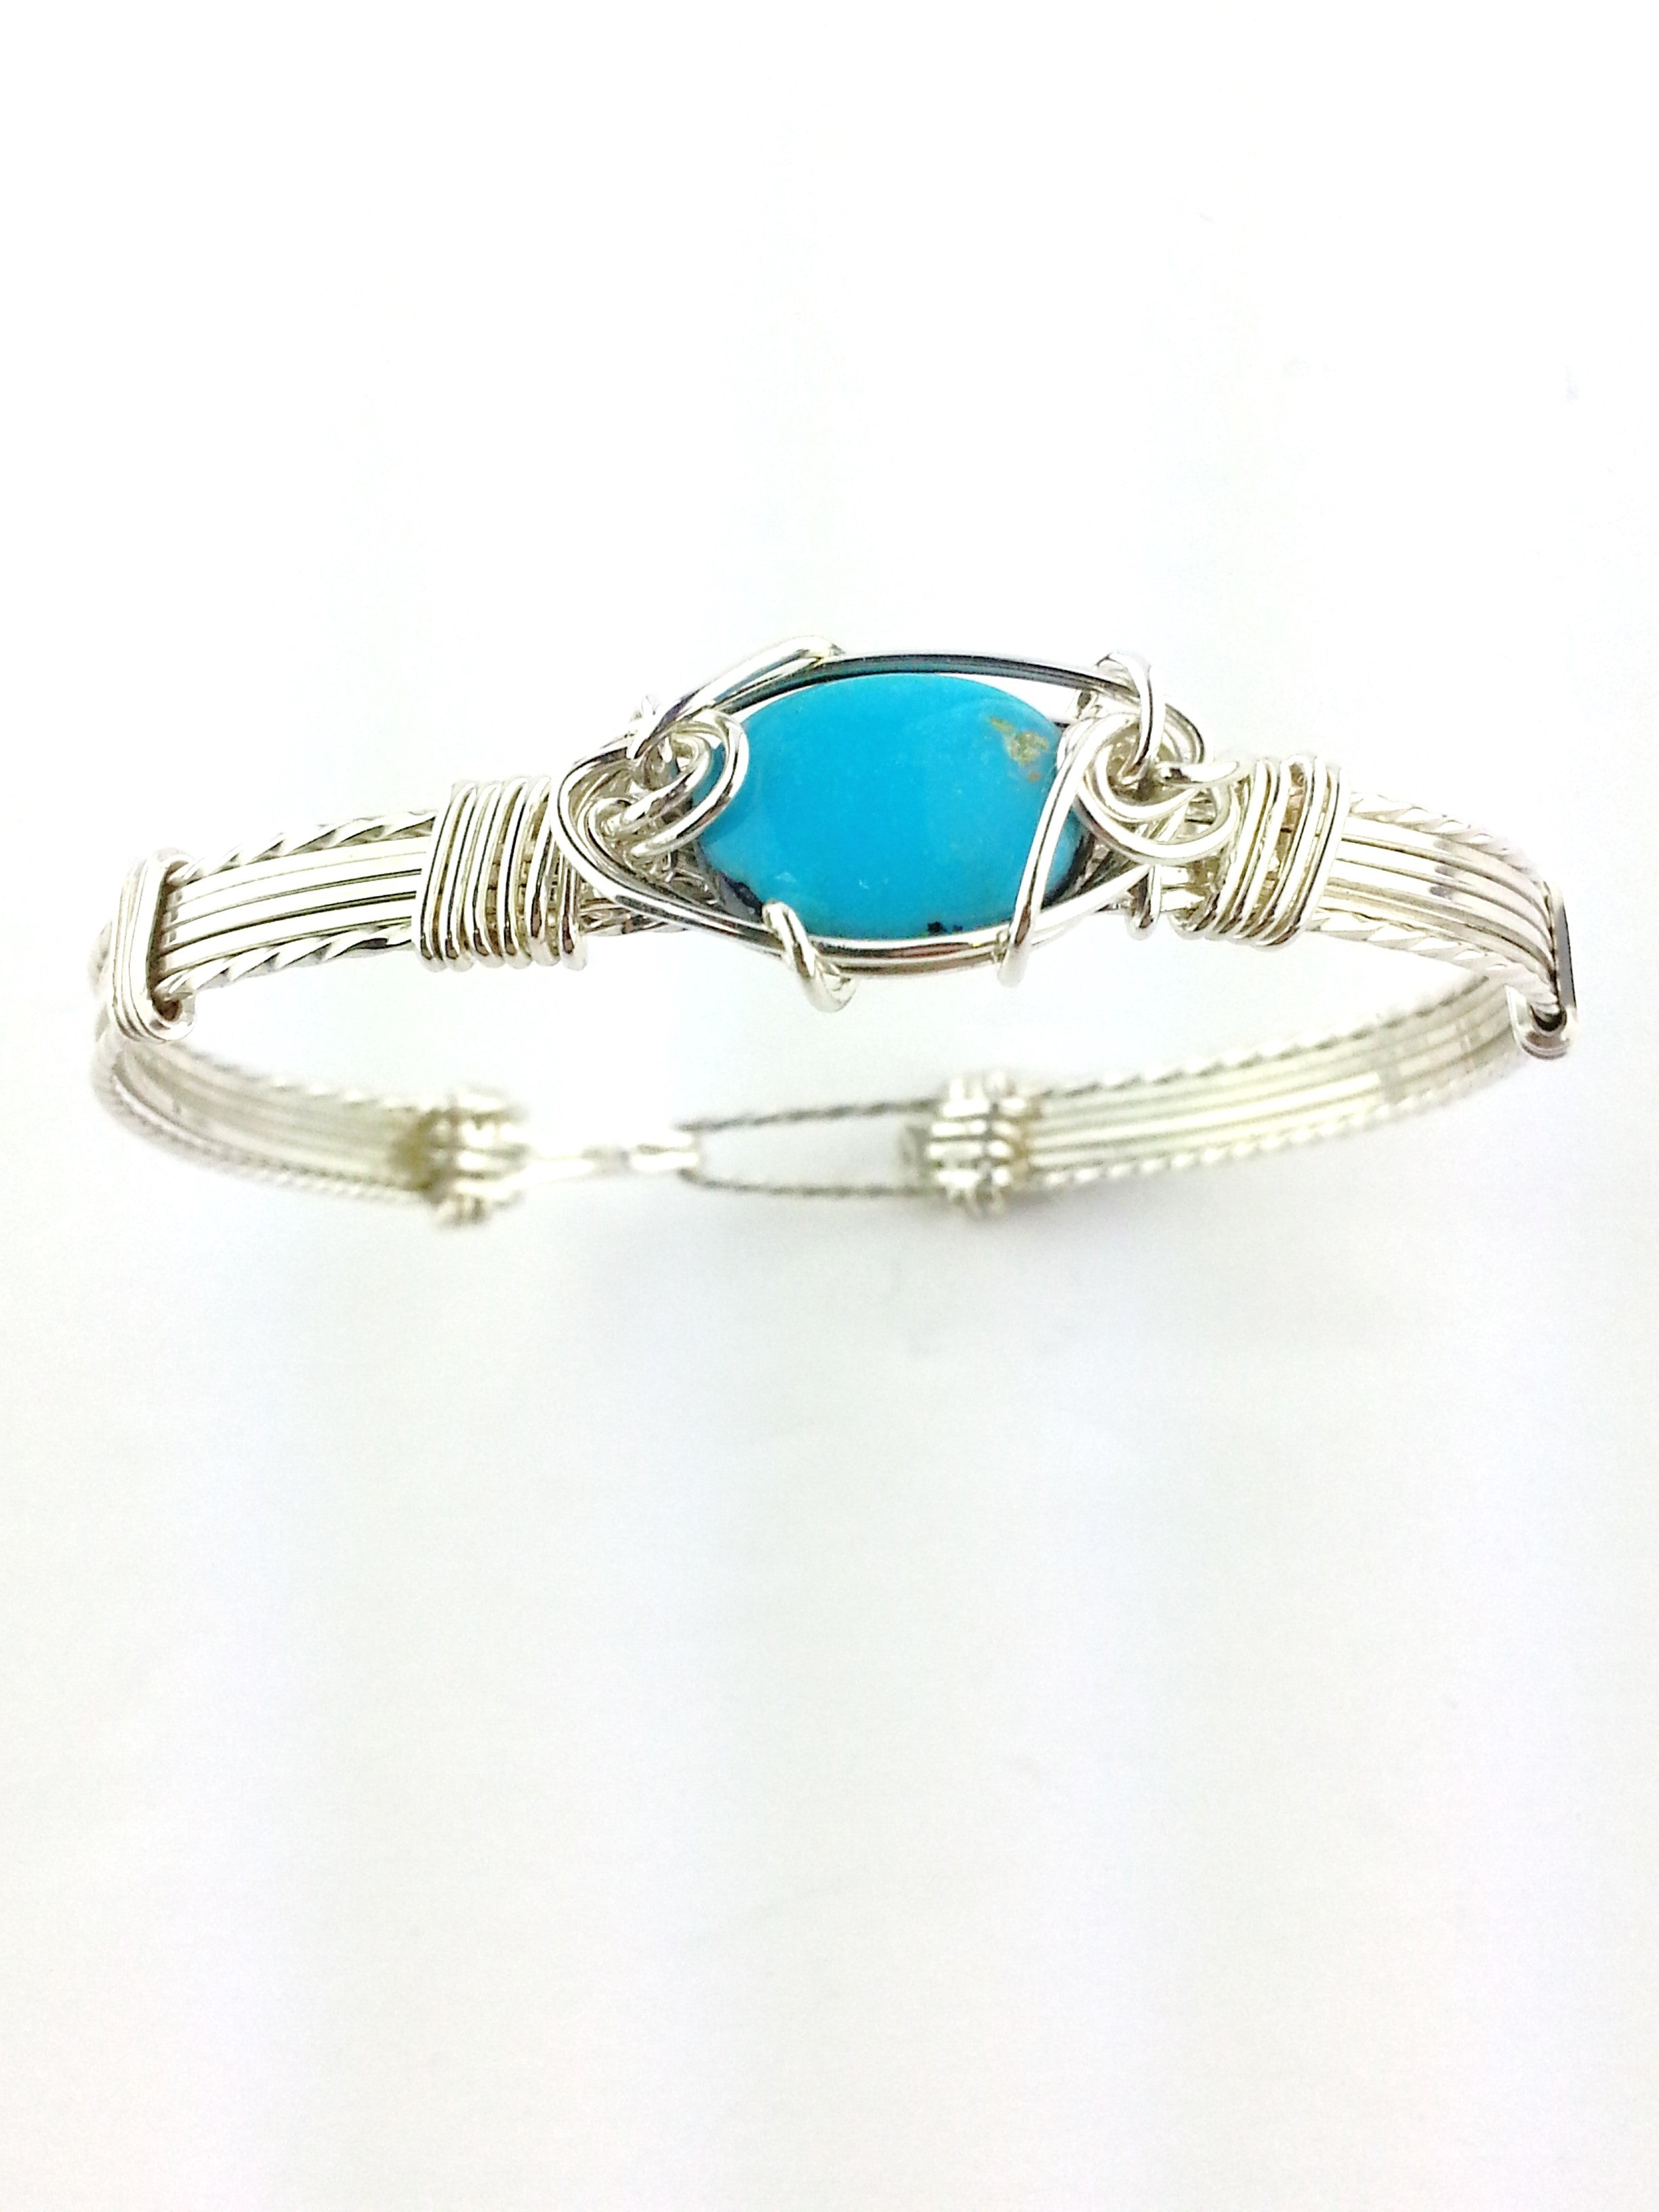 robin egg blue sleeping beauty turquoise bracelet set in sterling silver